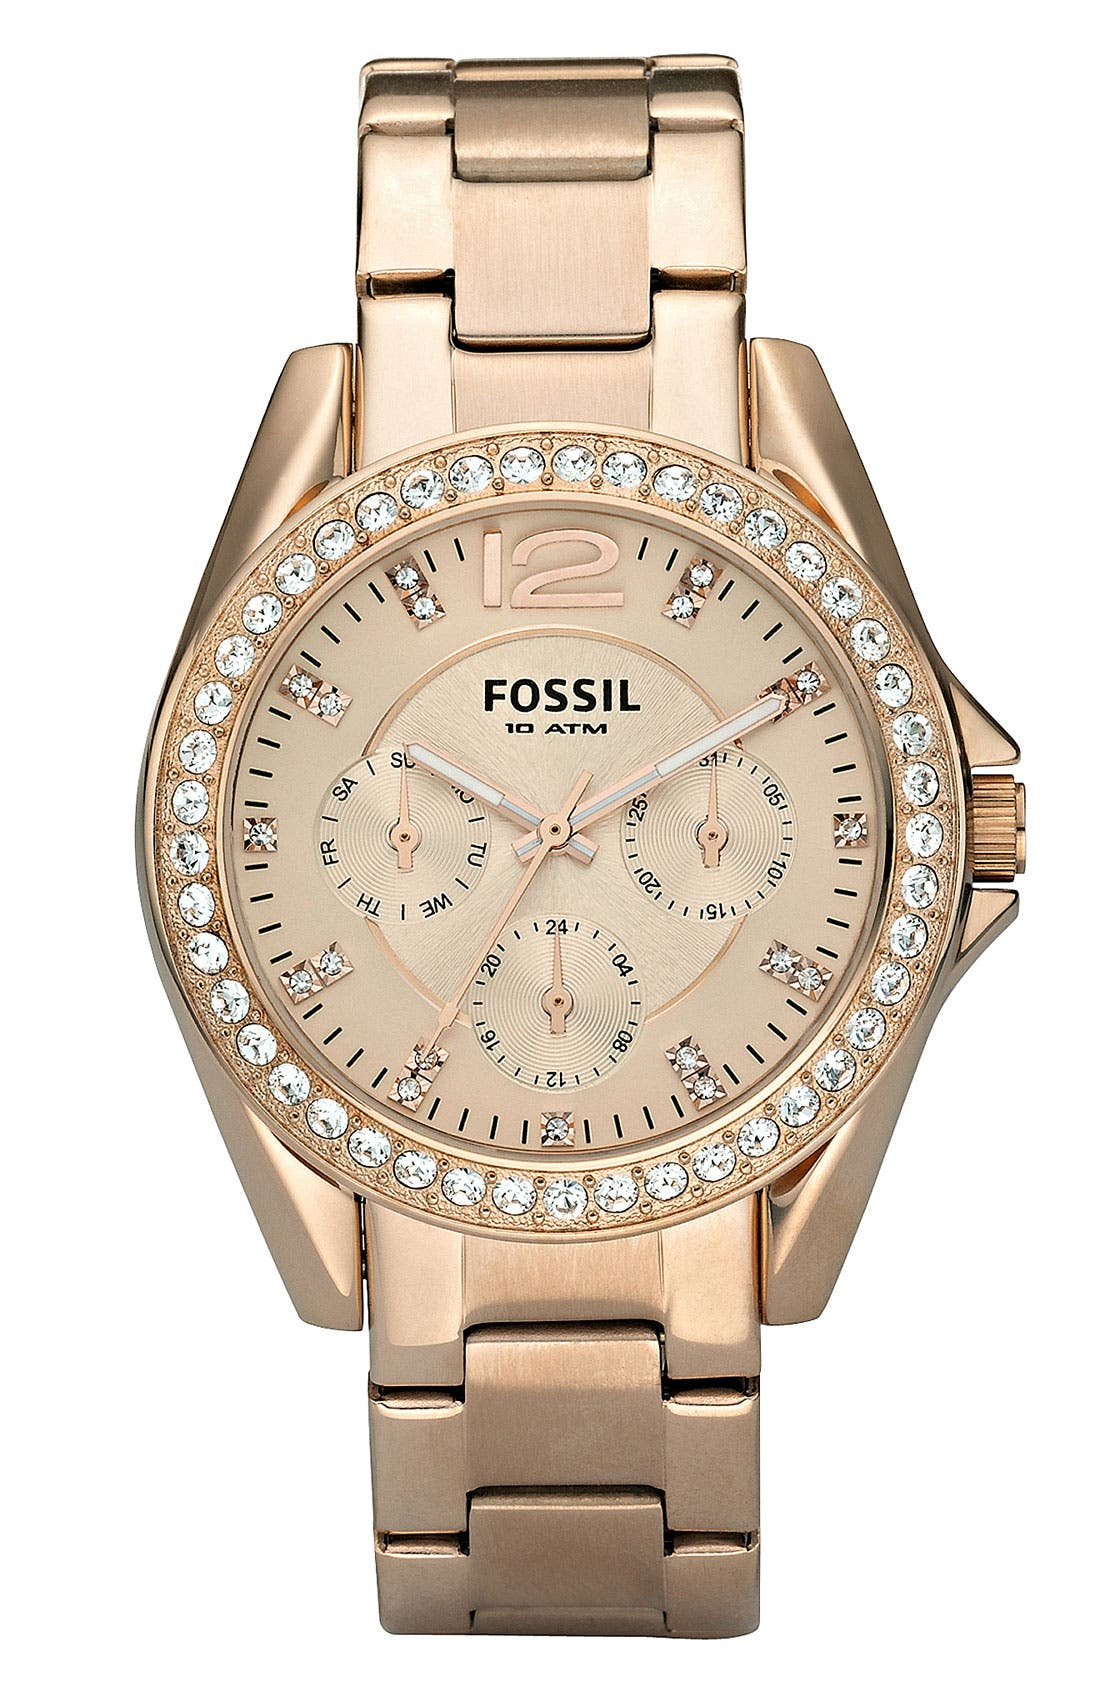 FOSSIL, 'Riley' Round Crystal Bezel Bracelet Watch, 38mm, Main thumbnail 1, color, ROSE GOLD